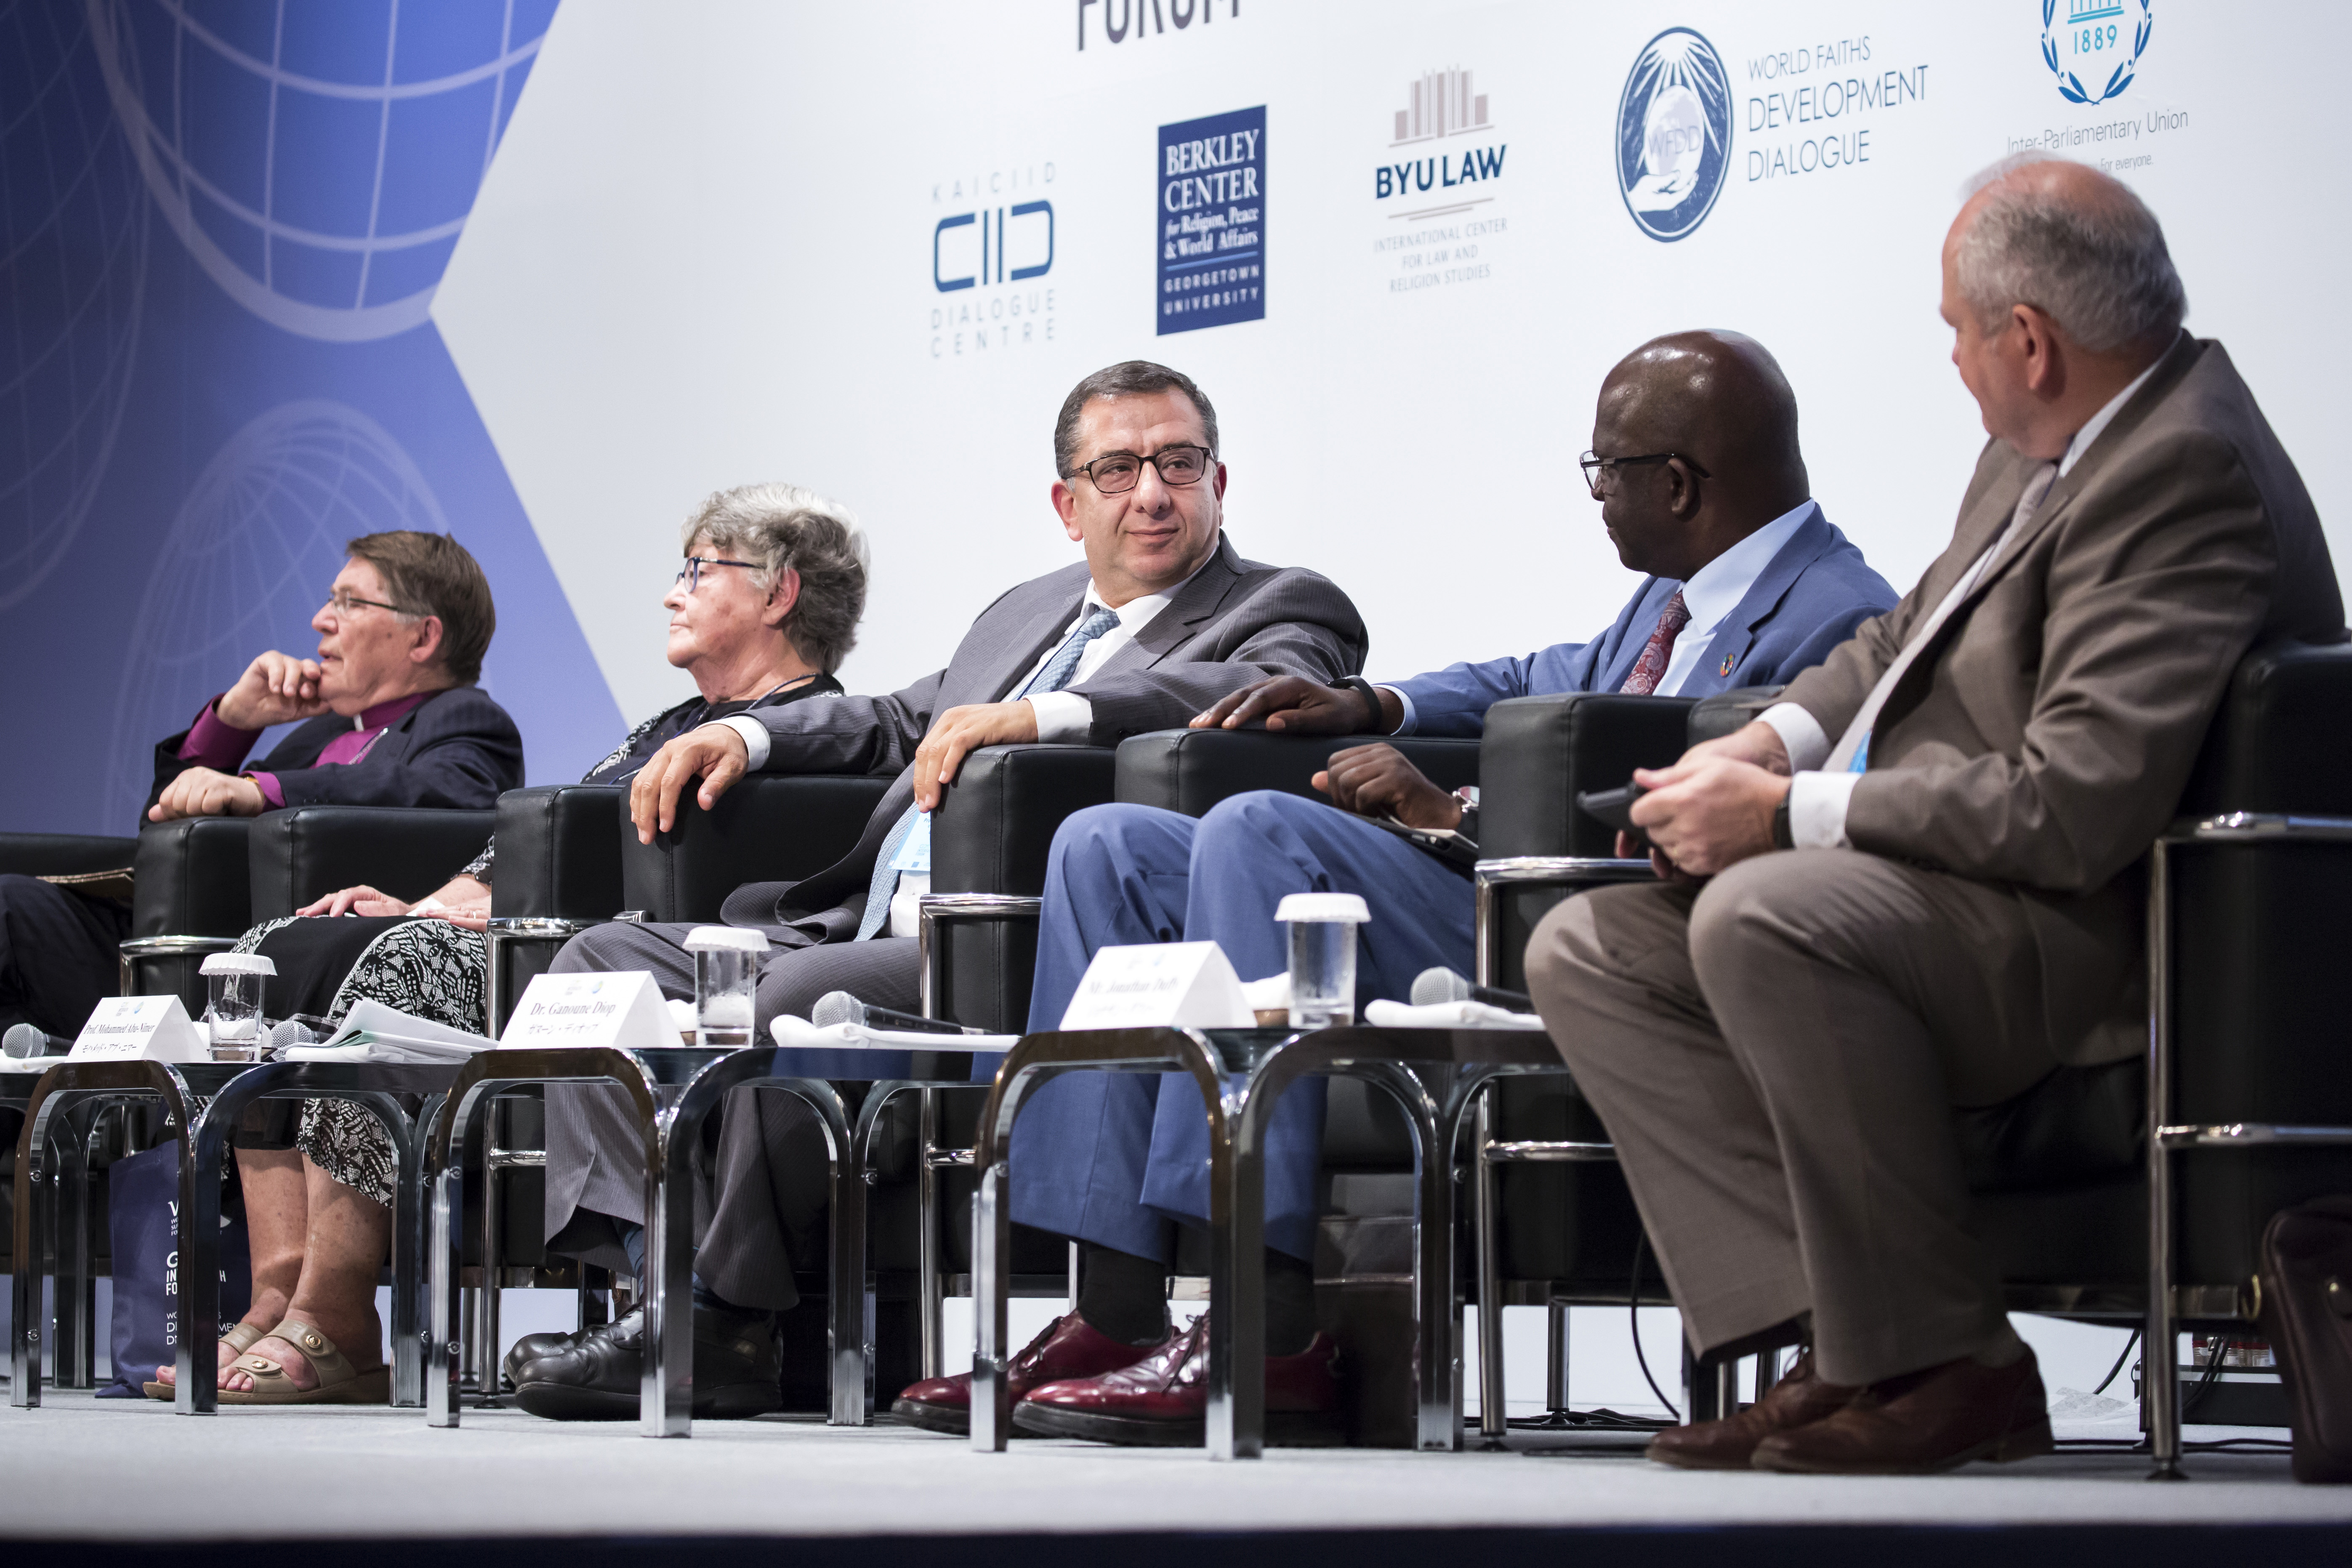 From left, Gunnar Stalsett, Denise Coghlan, Mohammed Abu-Nimer, Ganoune Diop and Jonathan Duffy take part in a session during the G20 Interfaith Forum in Chiba, Japan, on Saturday, June 8, 2019.